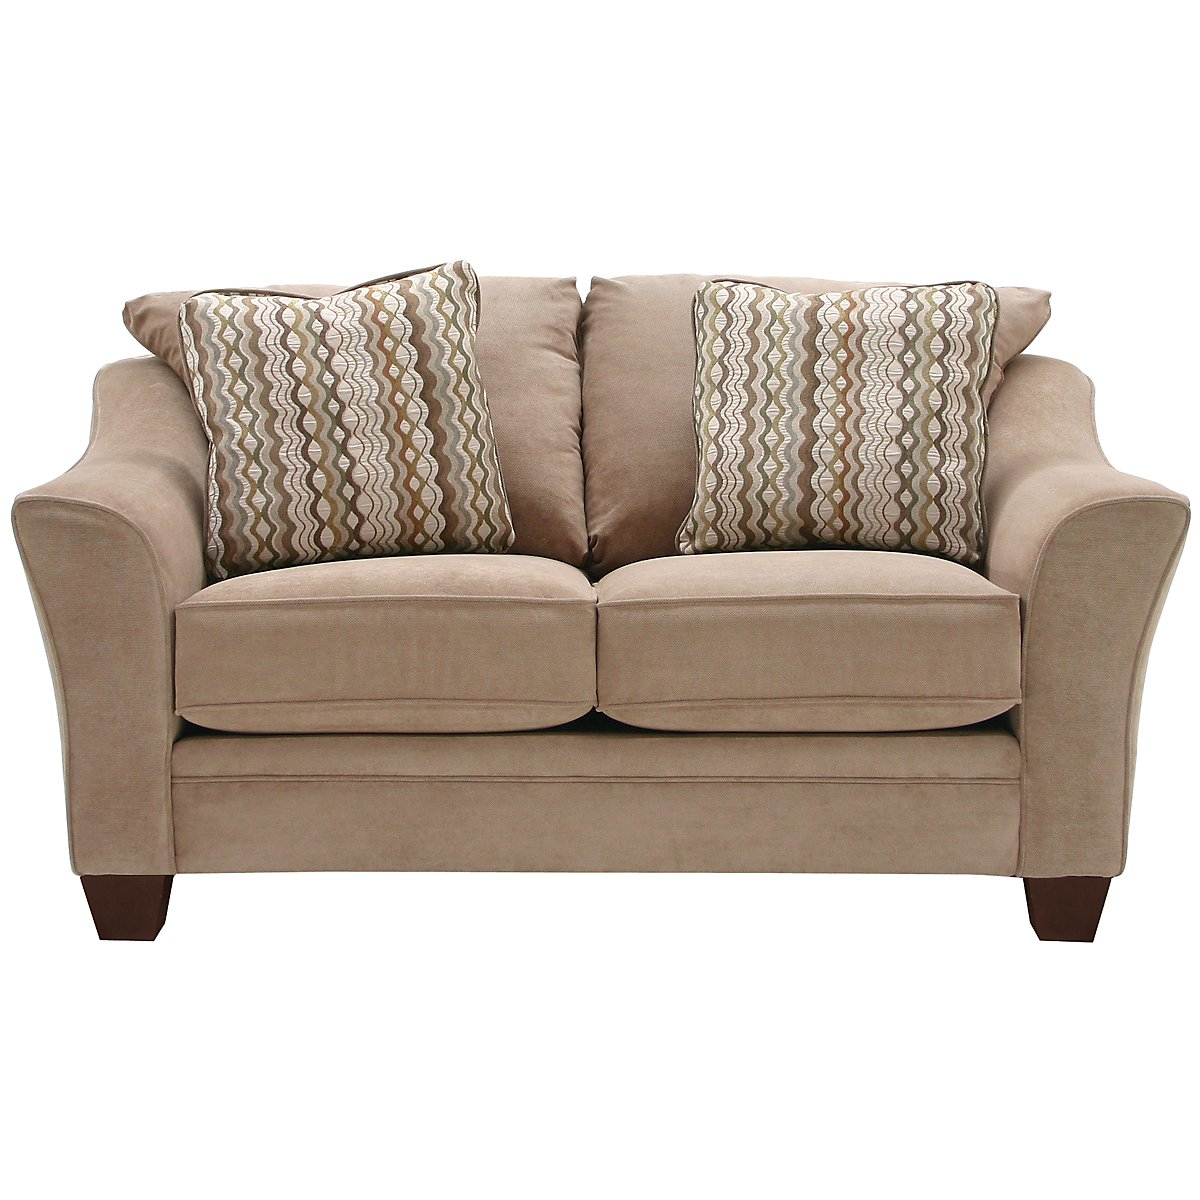 Grant2 Light Brown Microfiber Loveseat